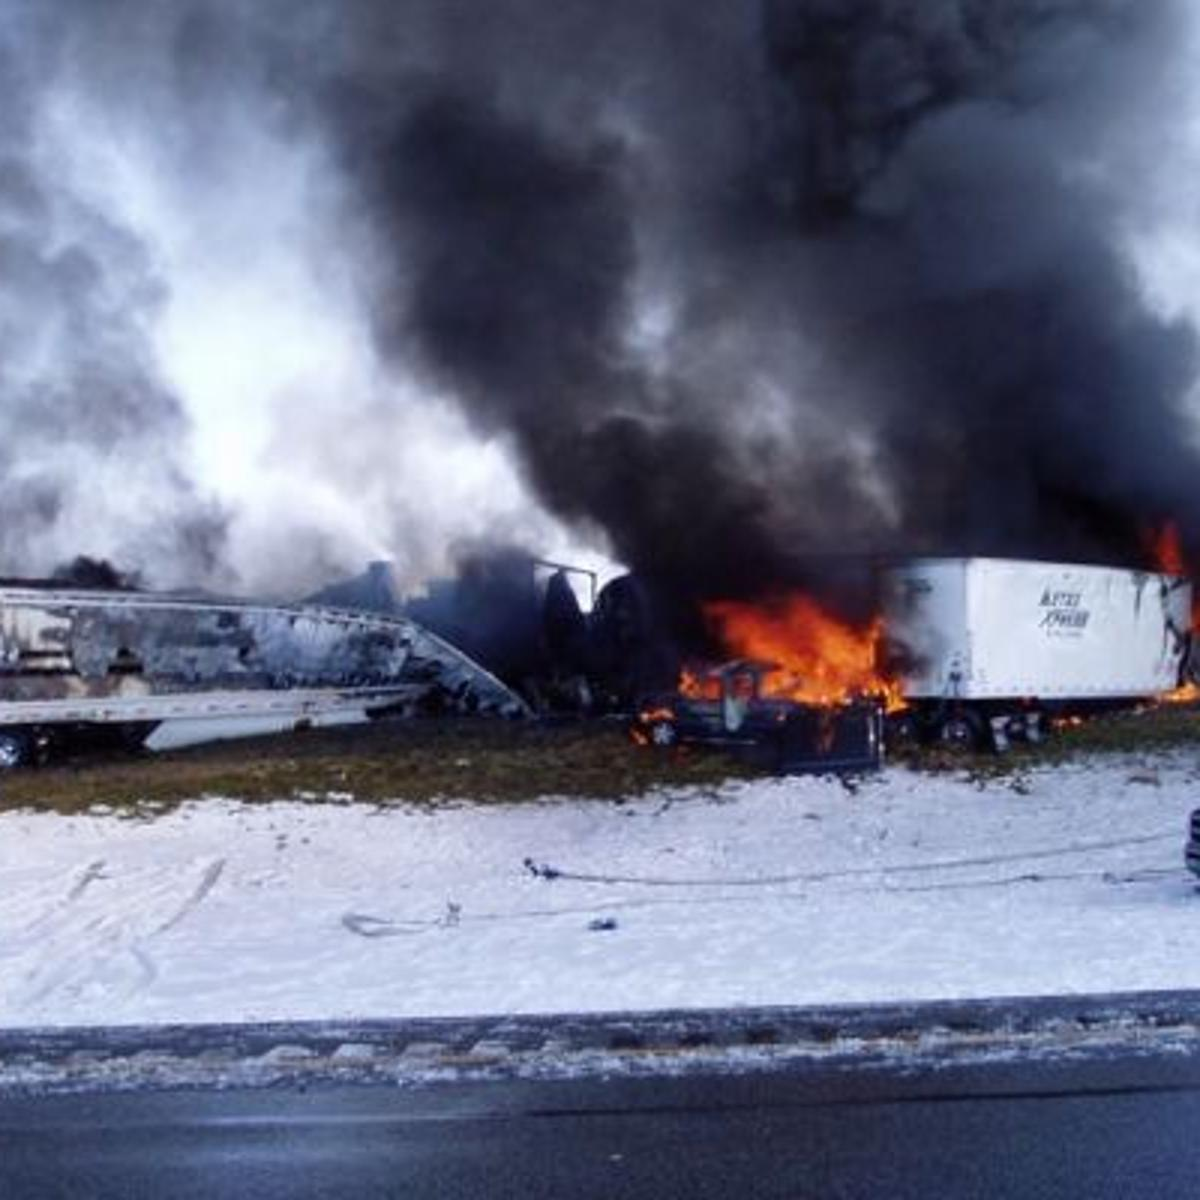 One person confirmed dead in pile-up on I-80 west of Laramie